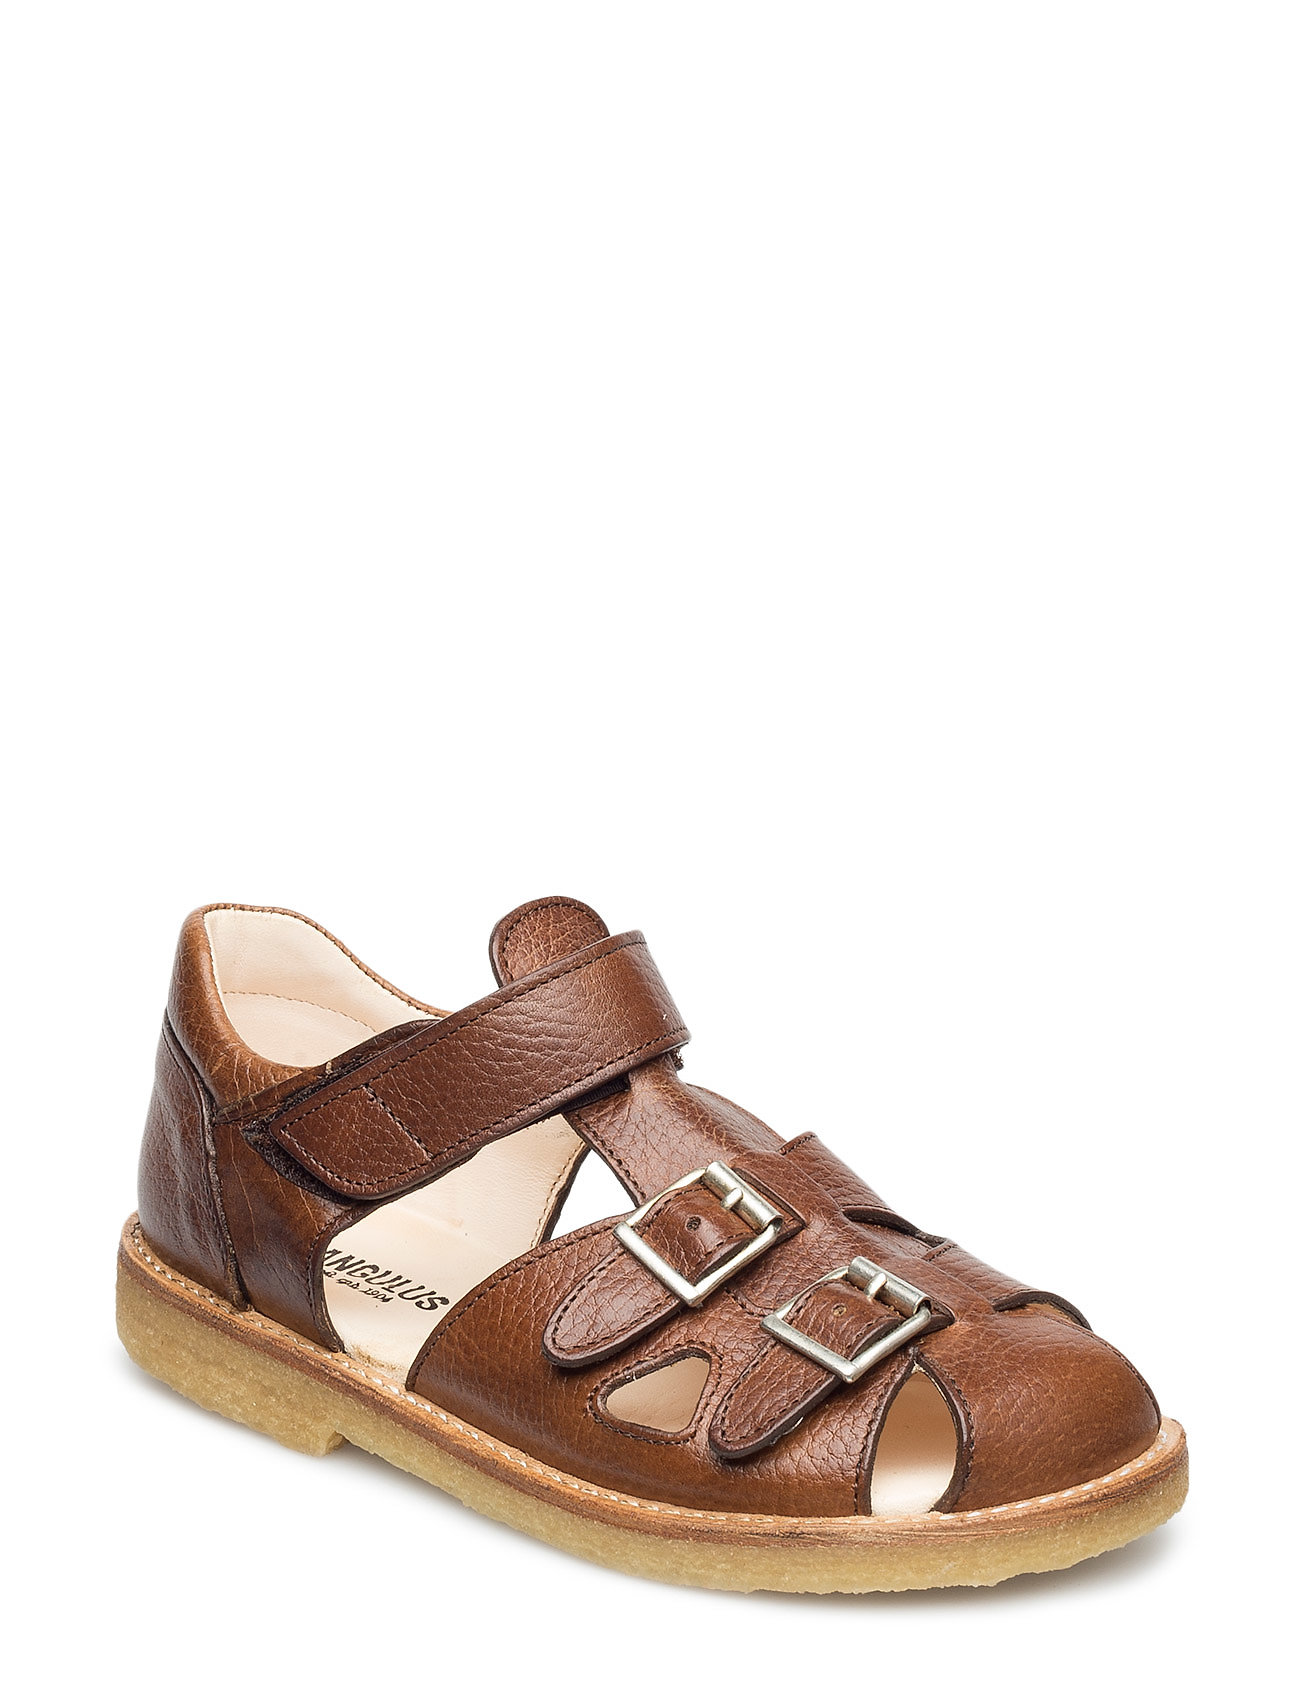 ANGULUS Sandal with two buckles in front - 2509 COGNAC